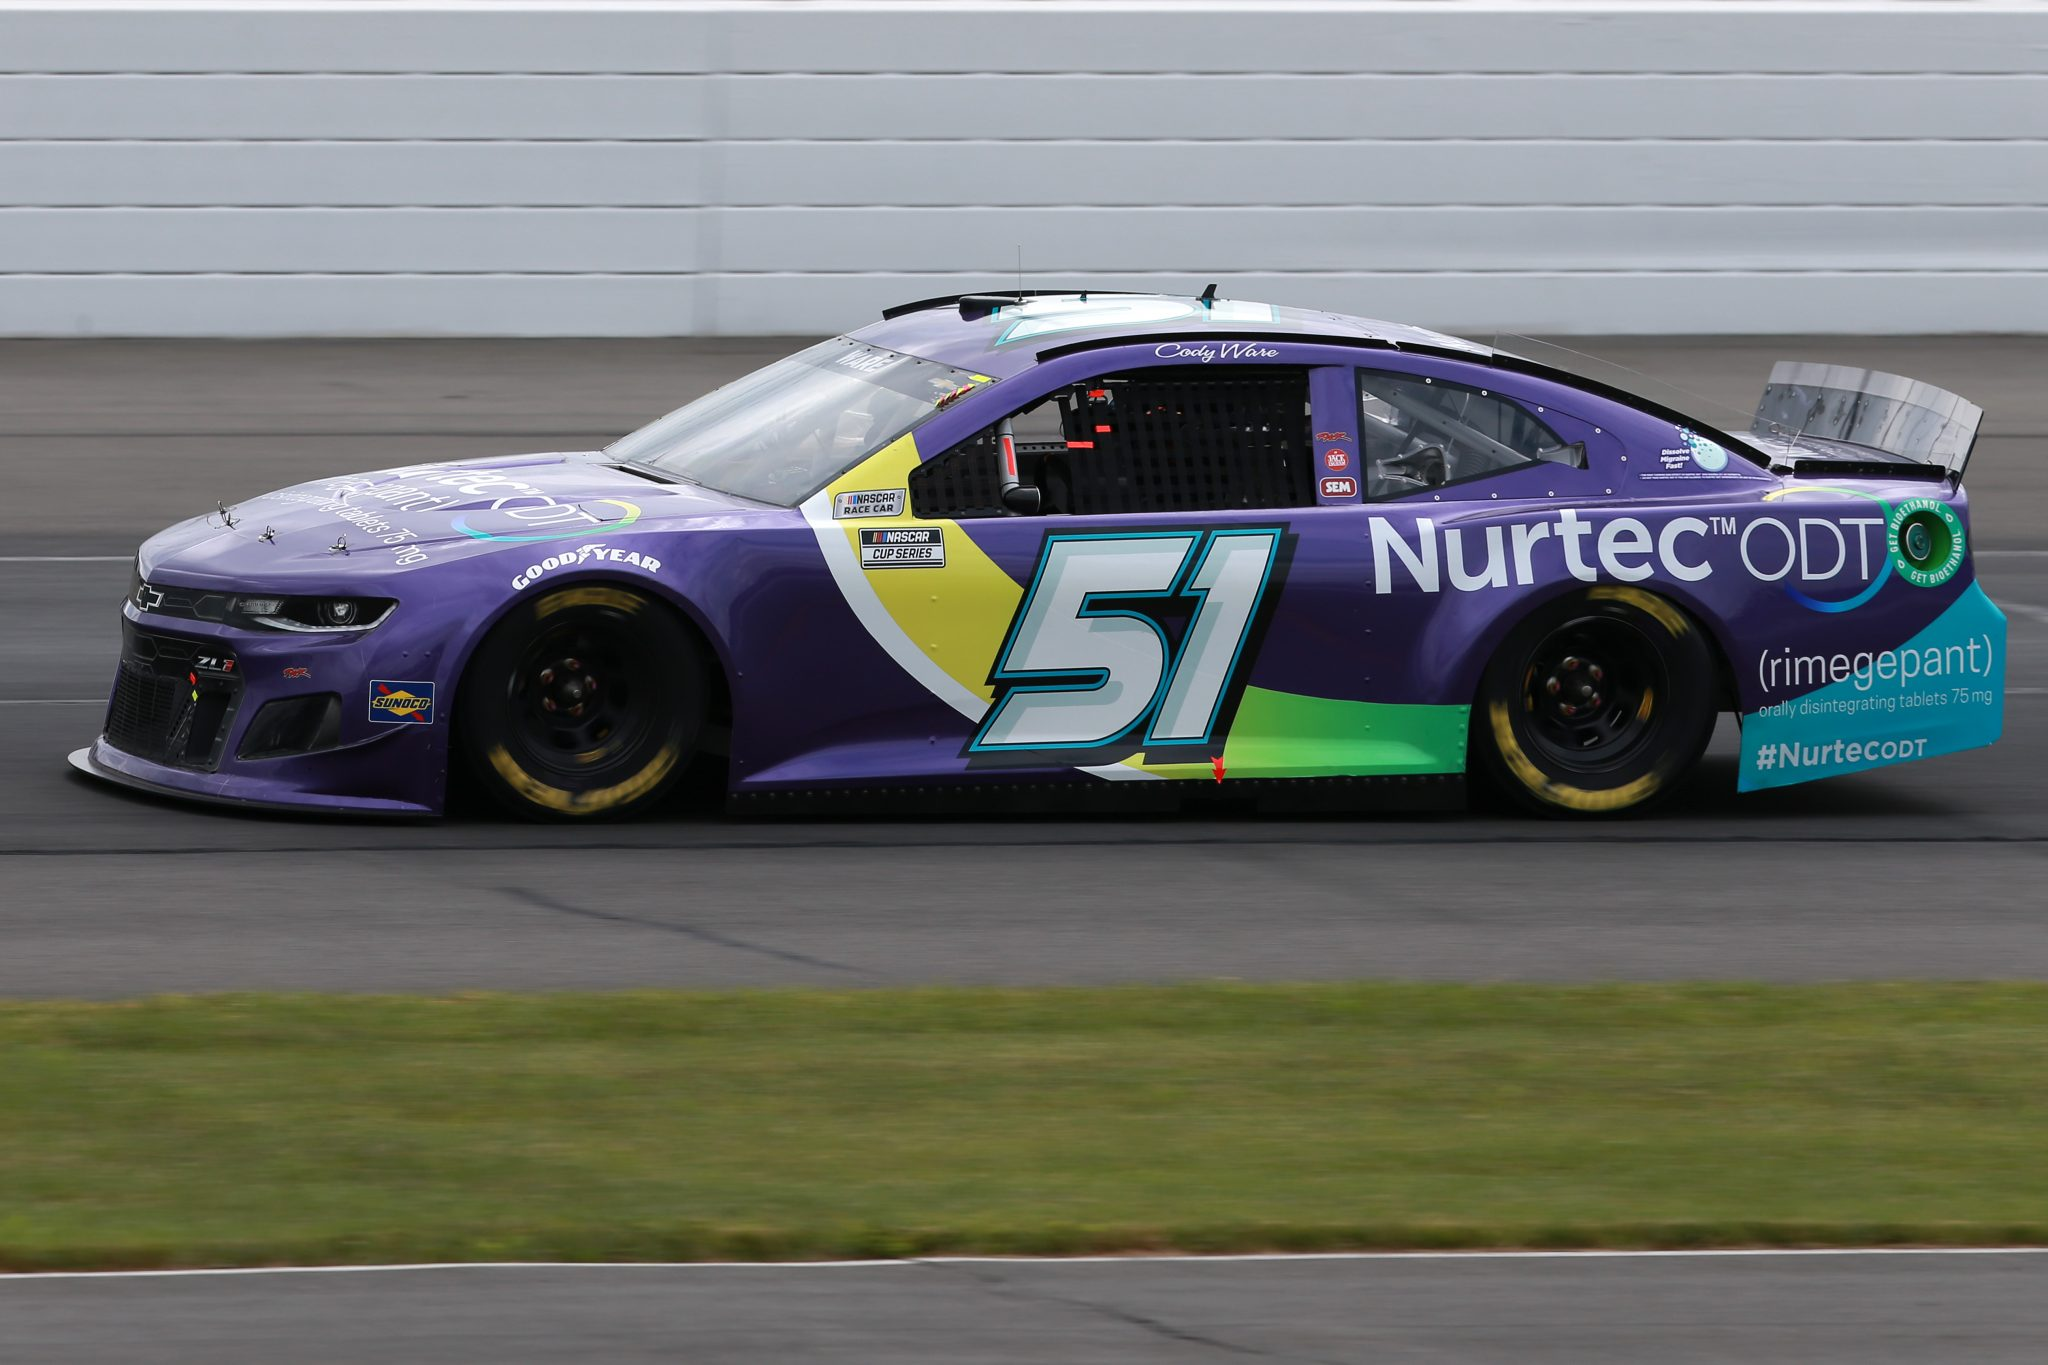 LONG POND, PENNSYLVANIA - JUNE 26: Cody Ware, driver of the #51 Nurtec ODT Chevrolet, drives during the NASCAR Cup Series Pocono Organics CBD 325 at Pocono Raceway on June 26, 2021 in Long Pond, Pennsylvania. (Photo by Sean Gardner/Getty Images) | Getty Images